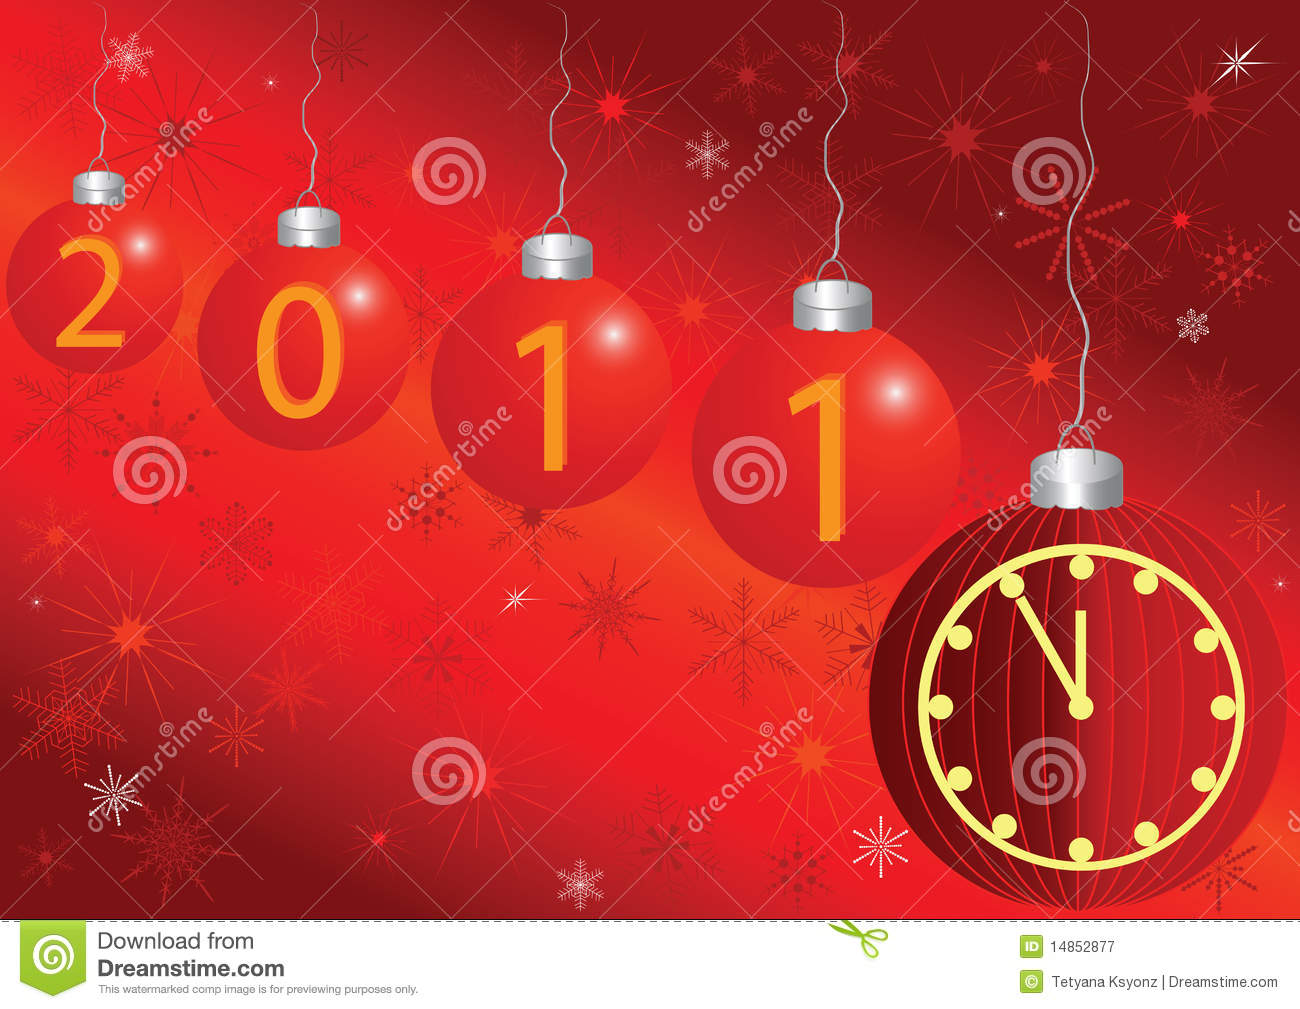 2011 card with a clock